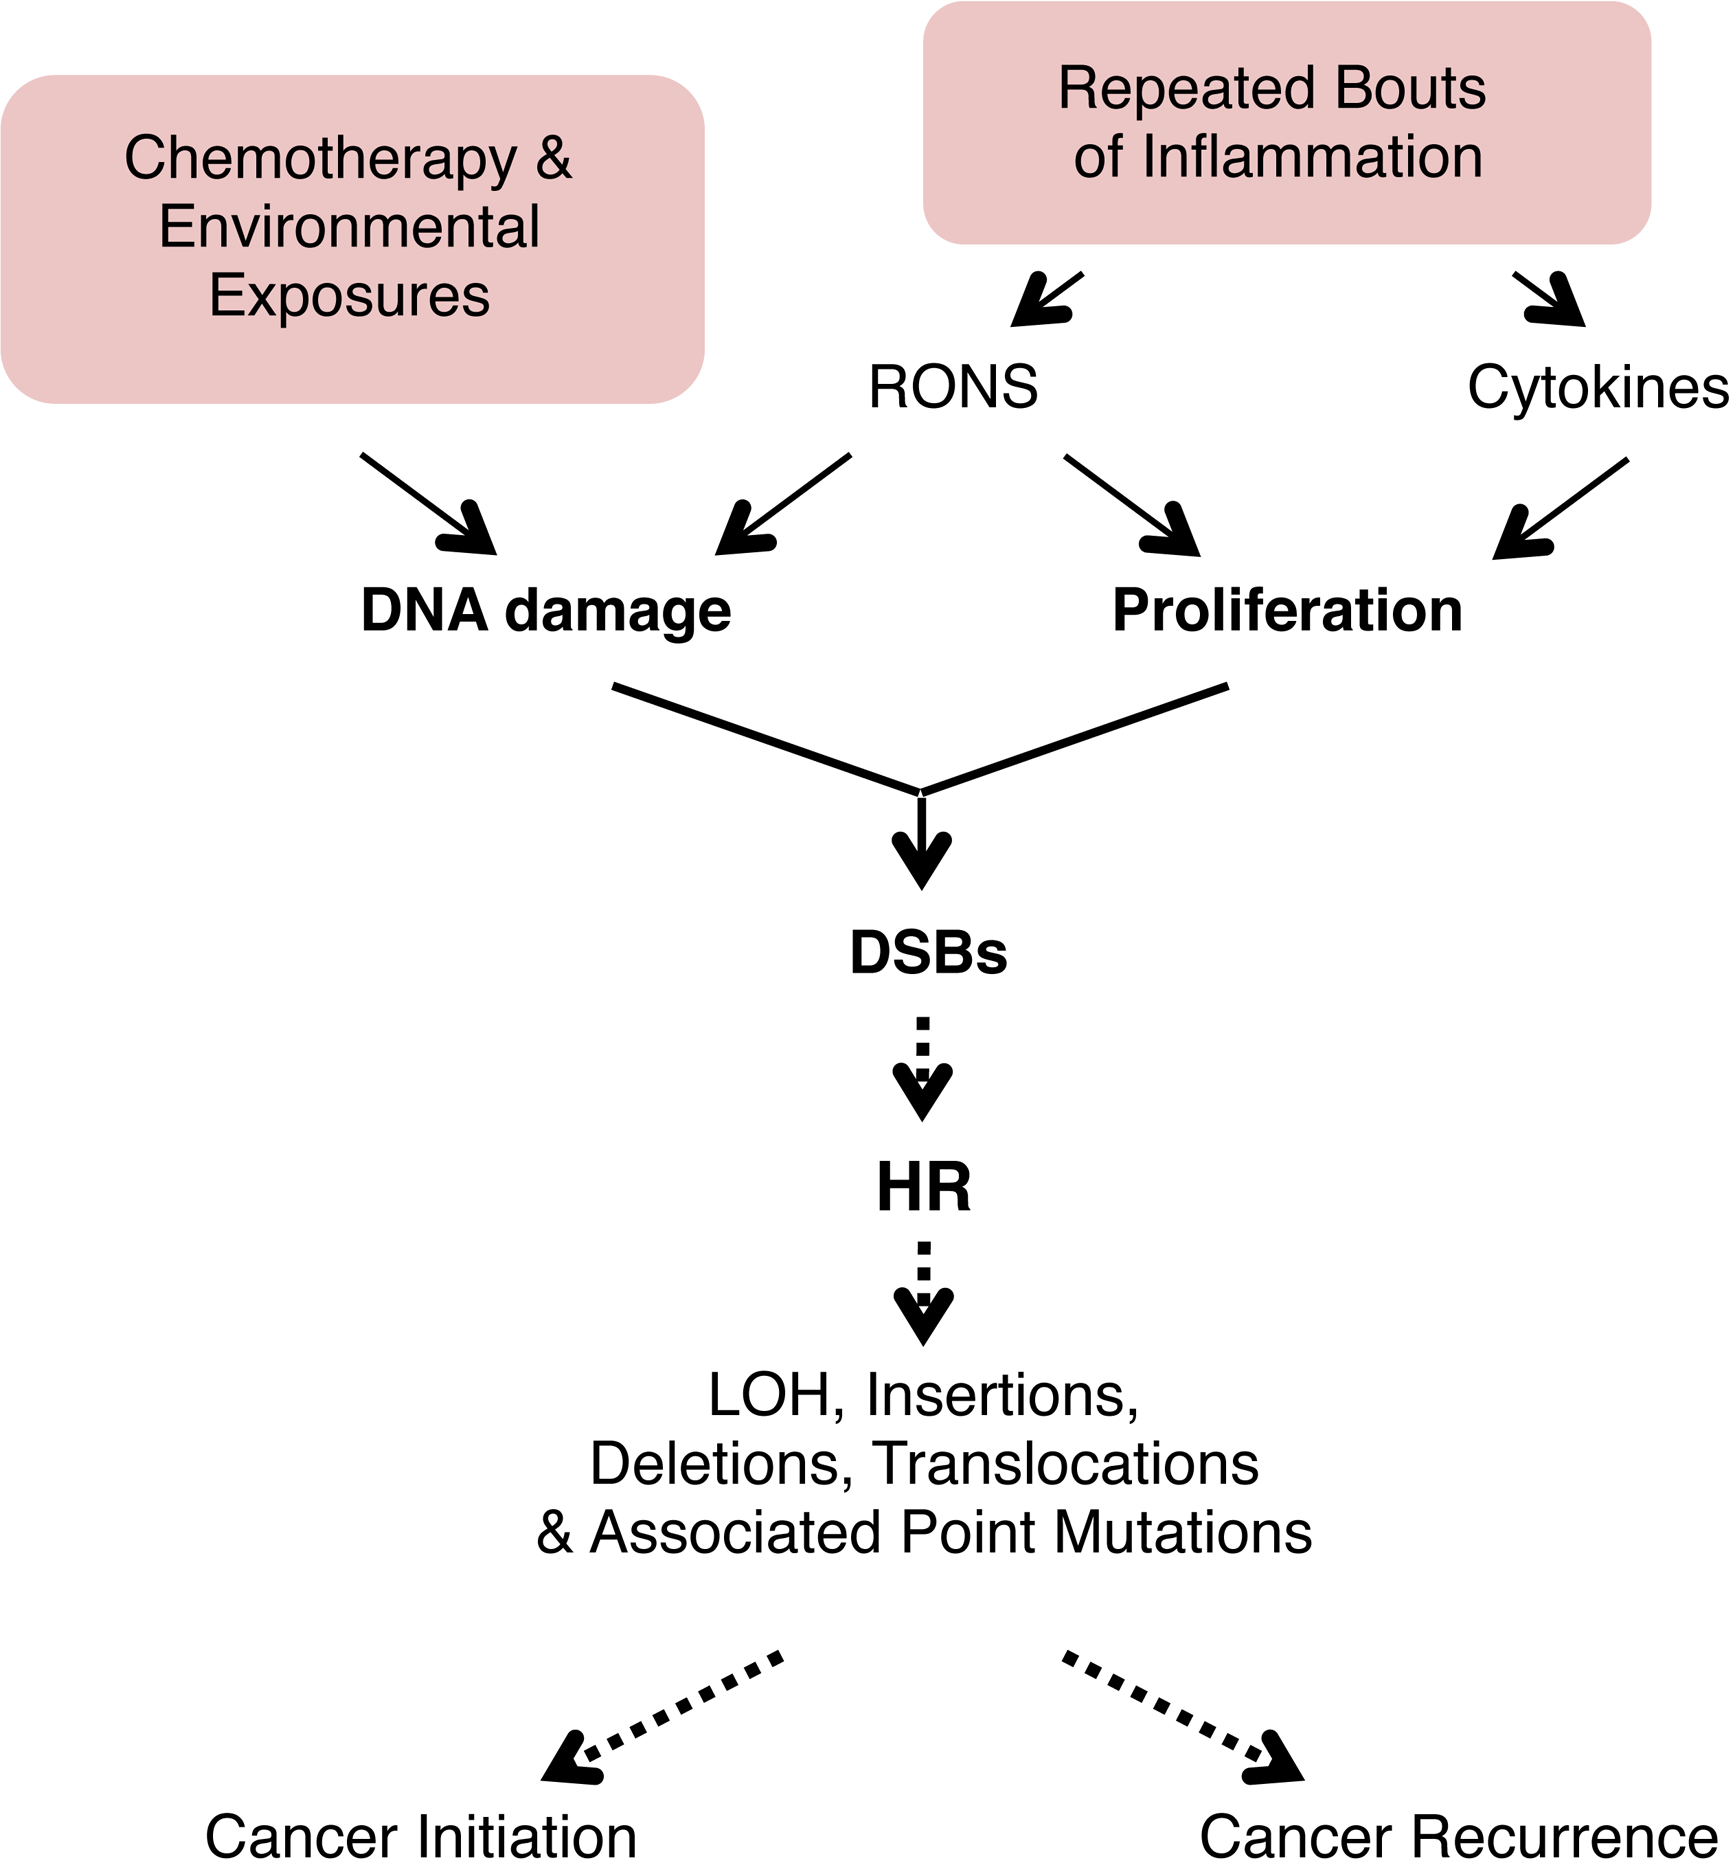 Model for the potentiation of sequence rearrangements induced by endogenous and exogenous DNA damage by inflammation-associated cell proliferation.